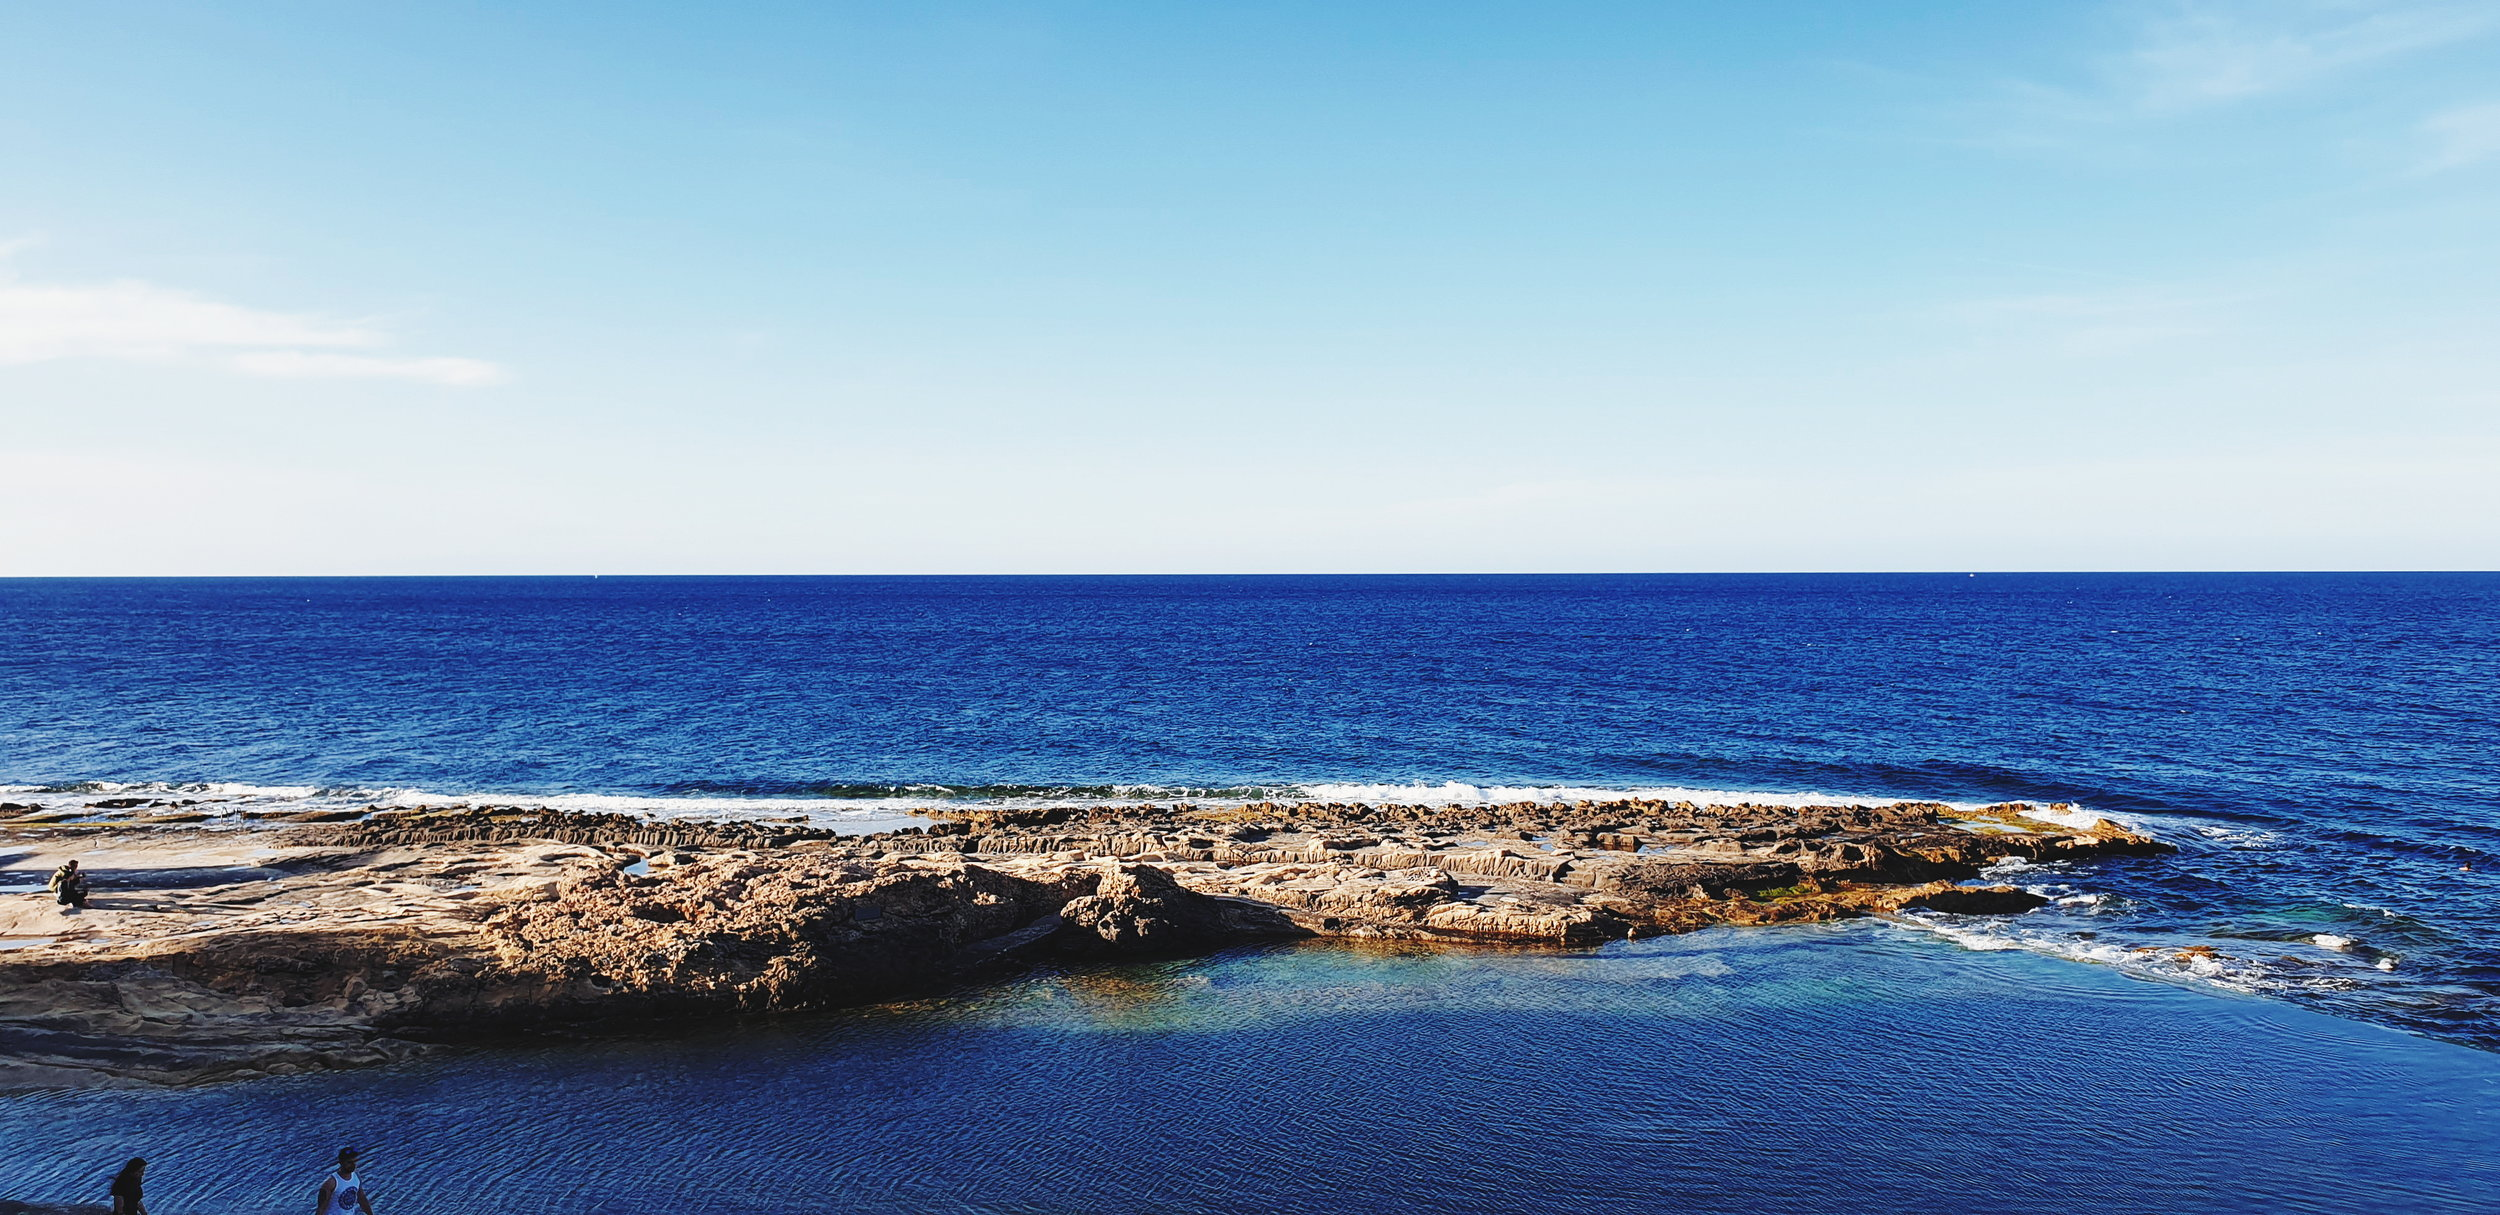 That blue view is absolute breathtaking. Thank you, Malta!